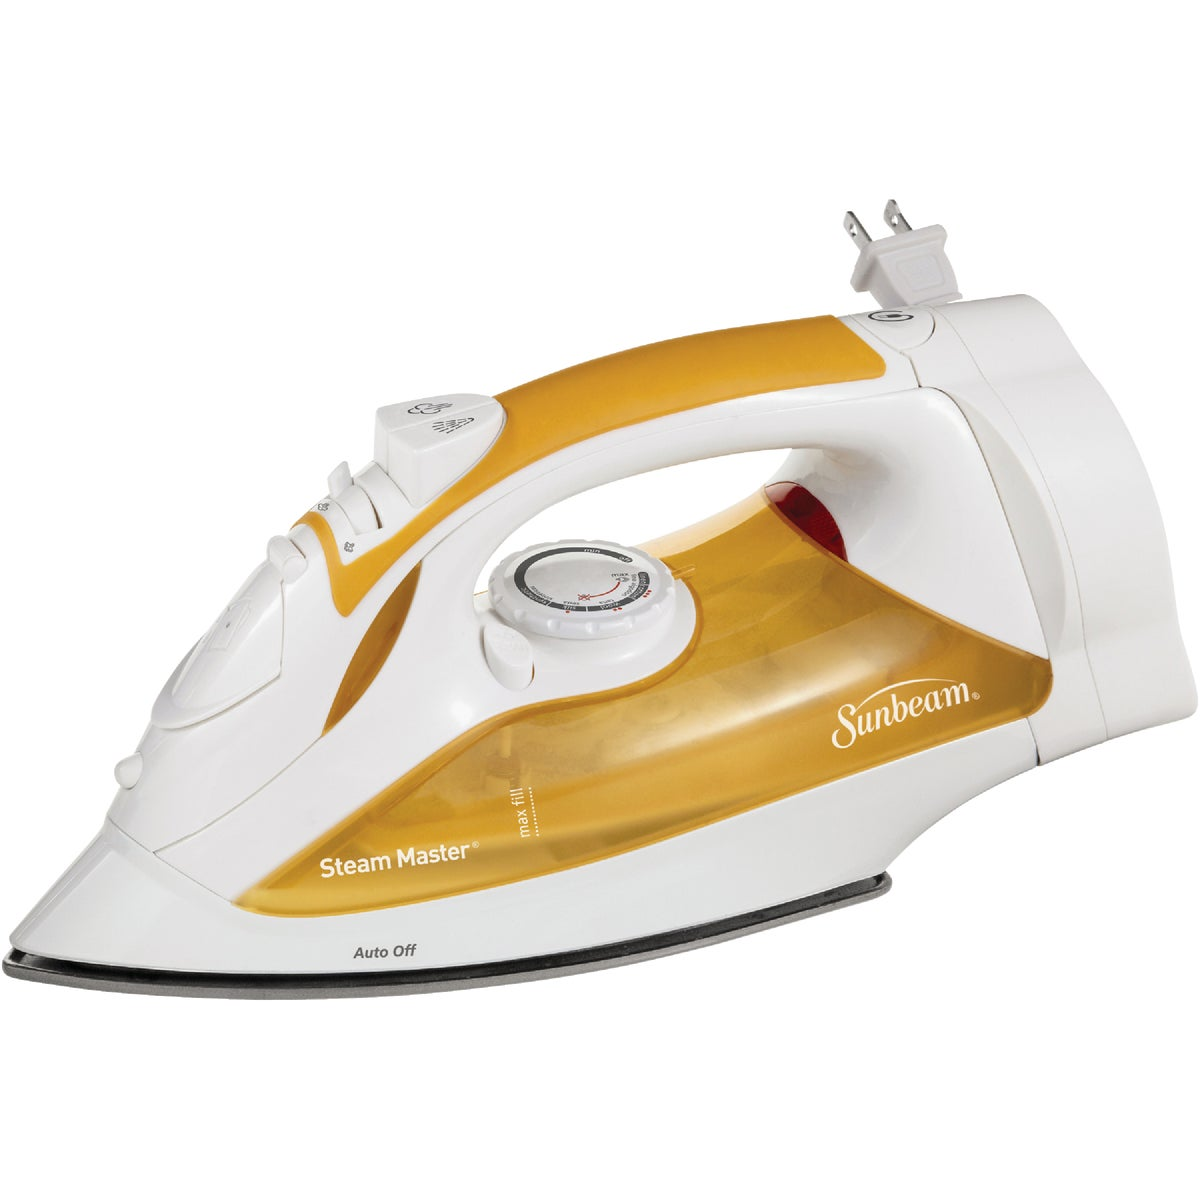 STEAM MASTER PROF IRON - GCSBCL-212-000 by Jarden Cs